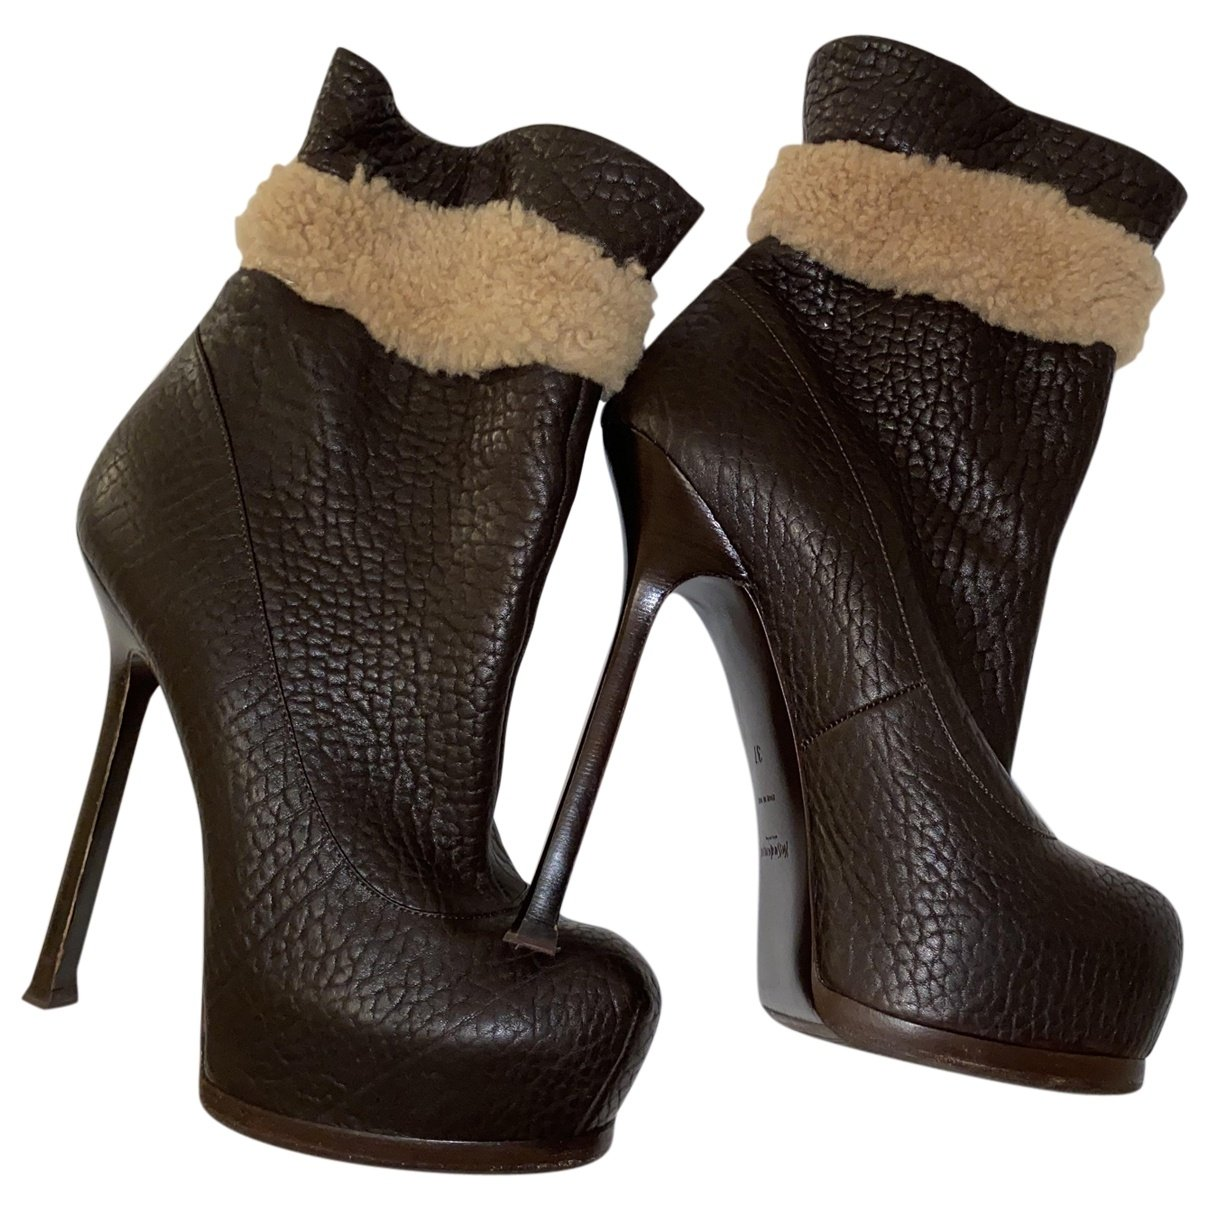 Yves Saint Laurent N Brown Leather Ankle boots for Women